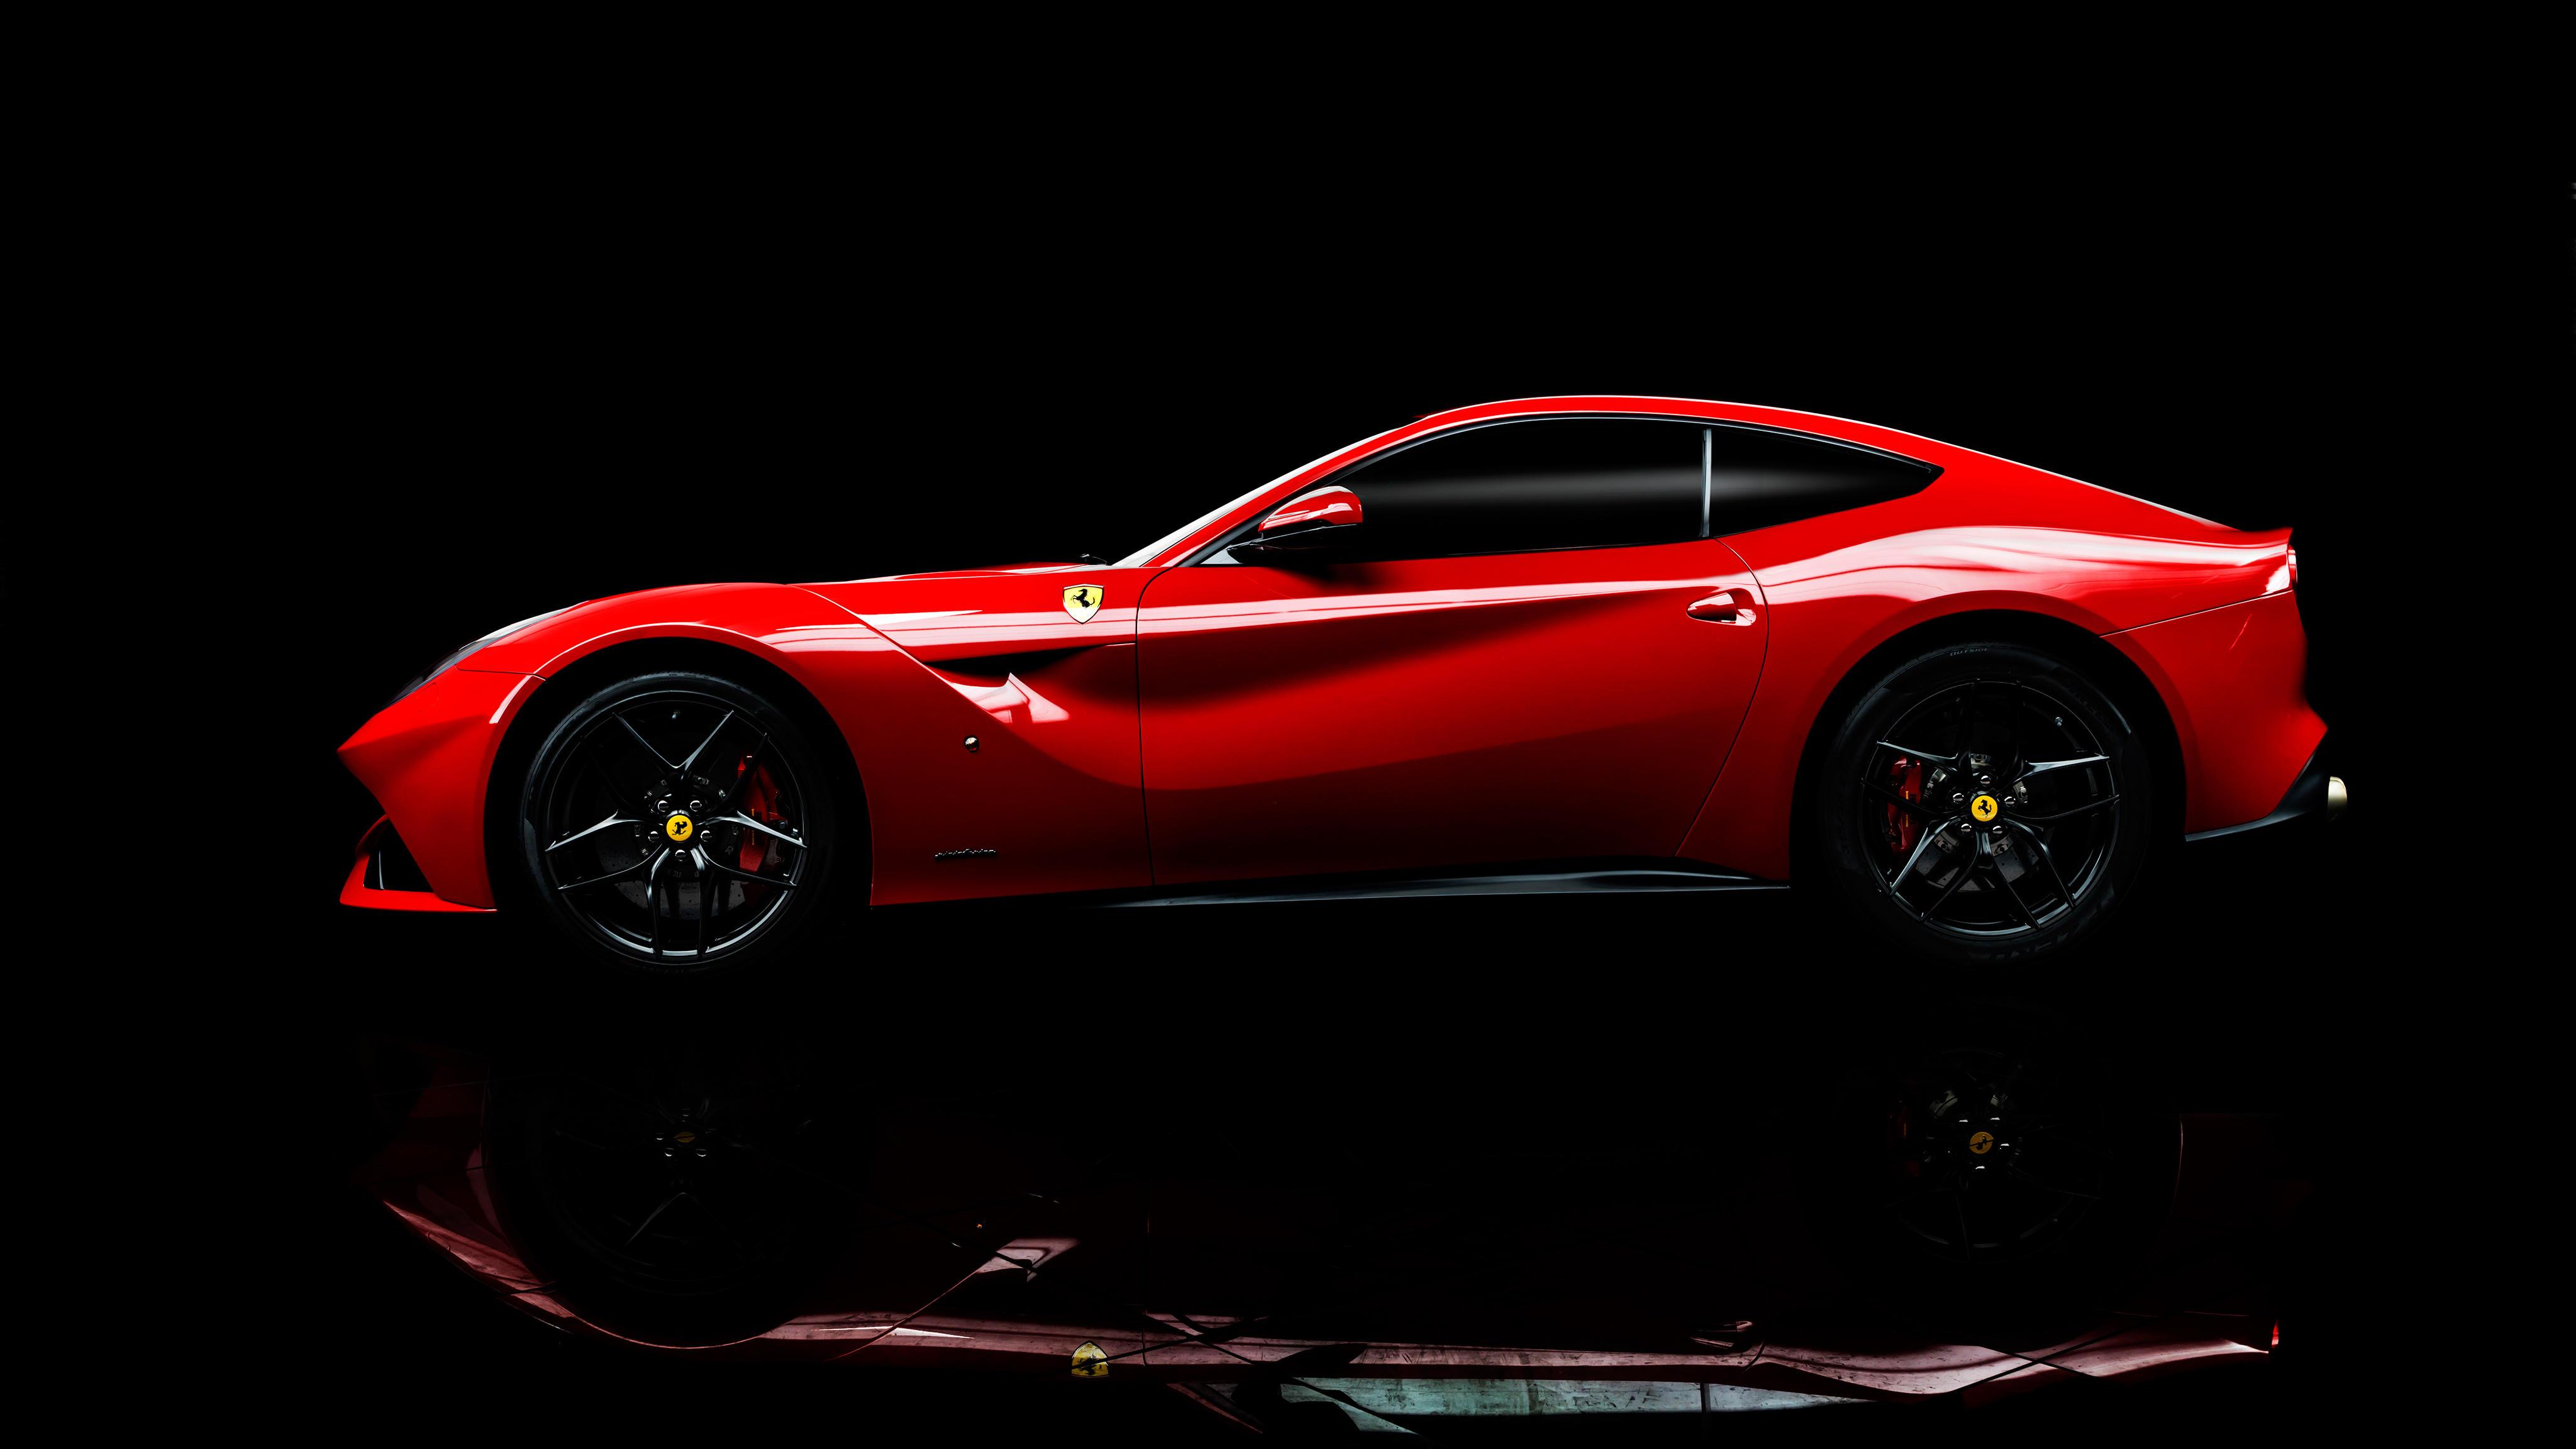 Ferrari f12berlinetta 4k wallpaper hd car wallpapers - Wallpaper hd 4k car ...